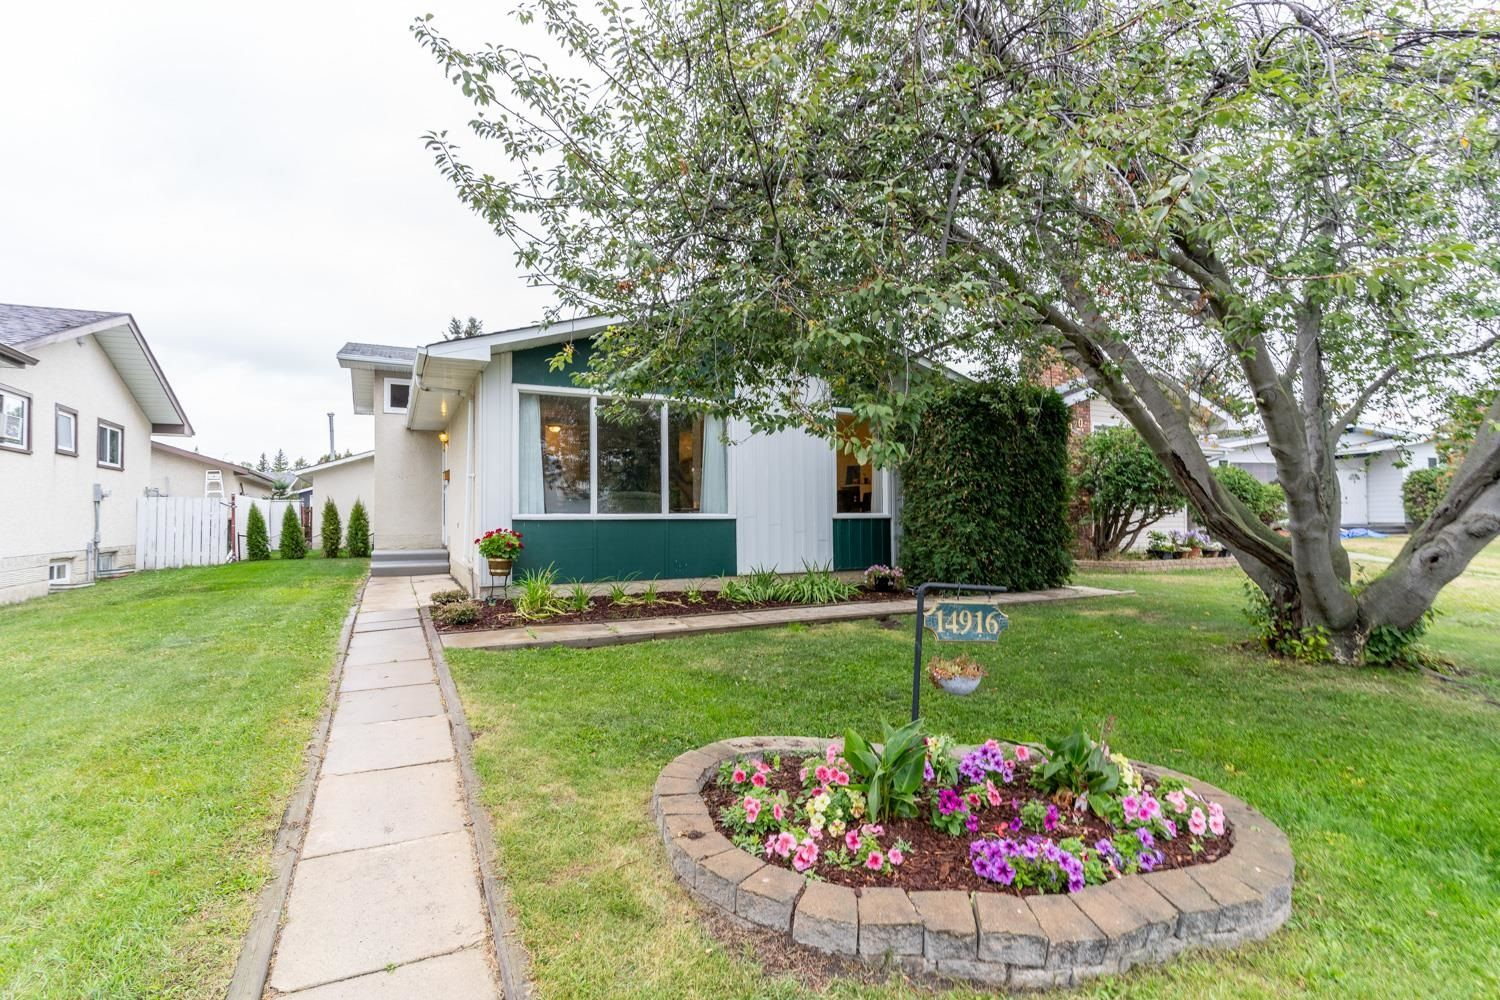 Main Photo: 14916 95A Street NW in Edmonton: Zone 02 House for sale : MLS®# E4260093